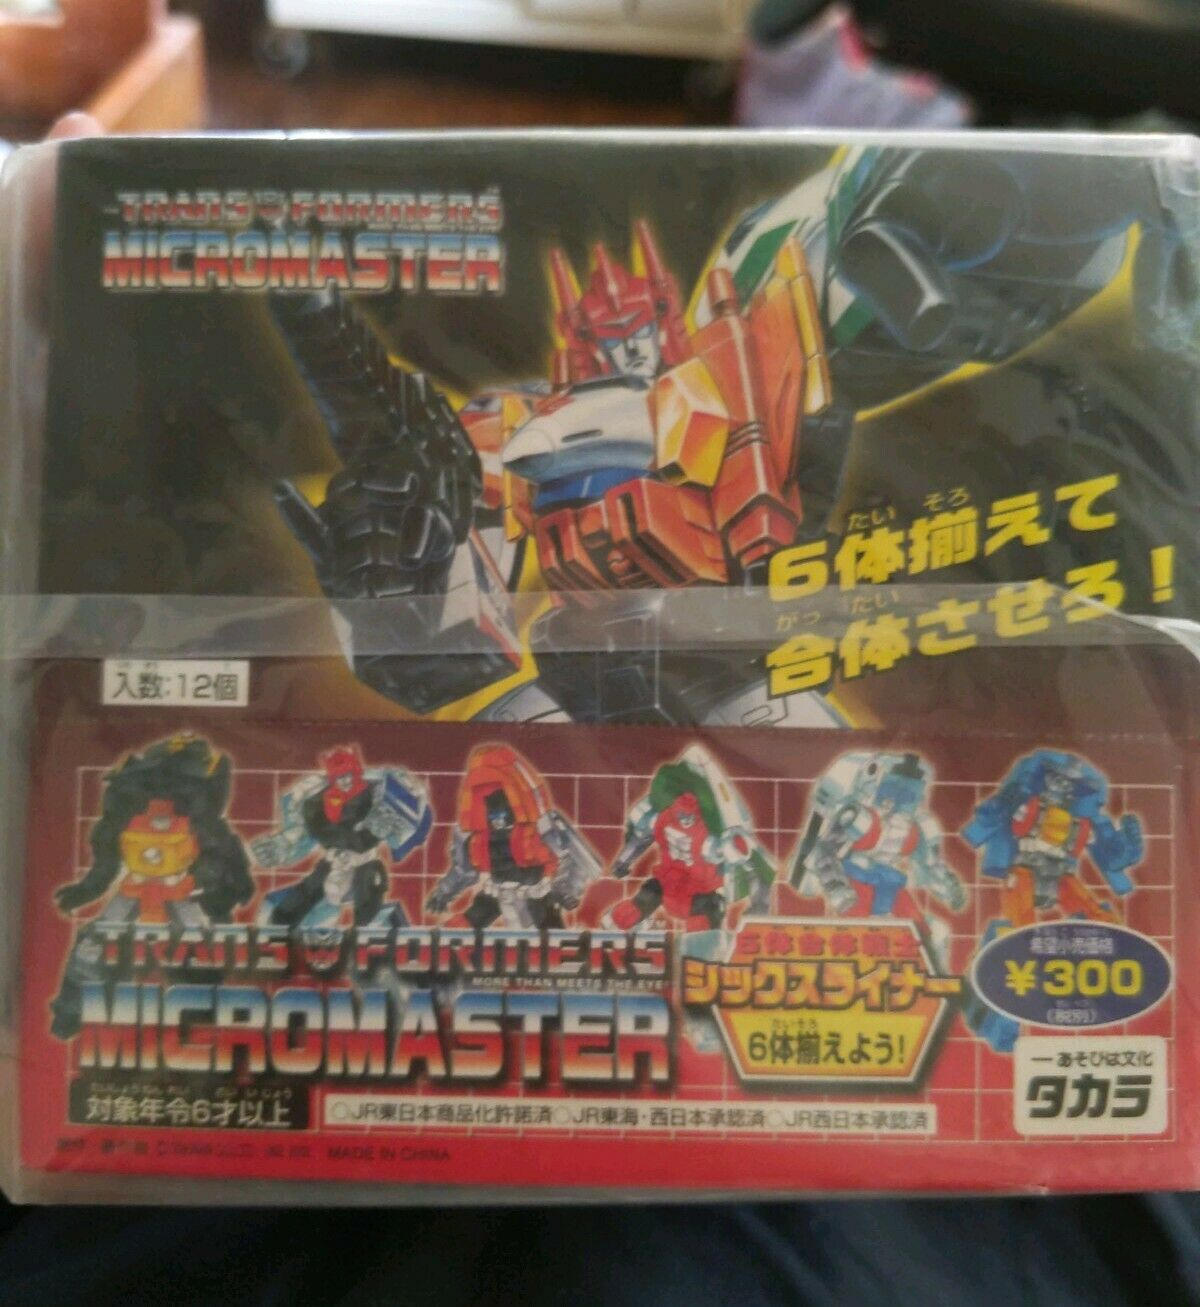 Transformers Micromaster Sixliner Mini Autobot MISB with Counter Display 12Piece